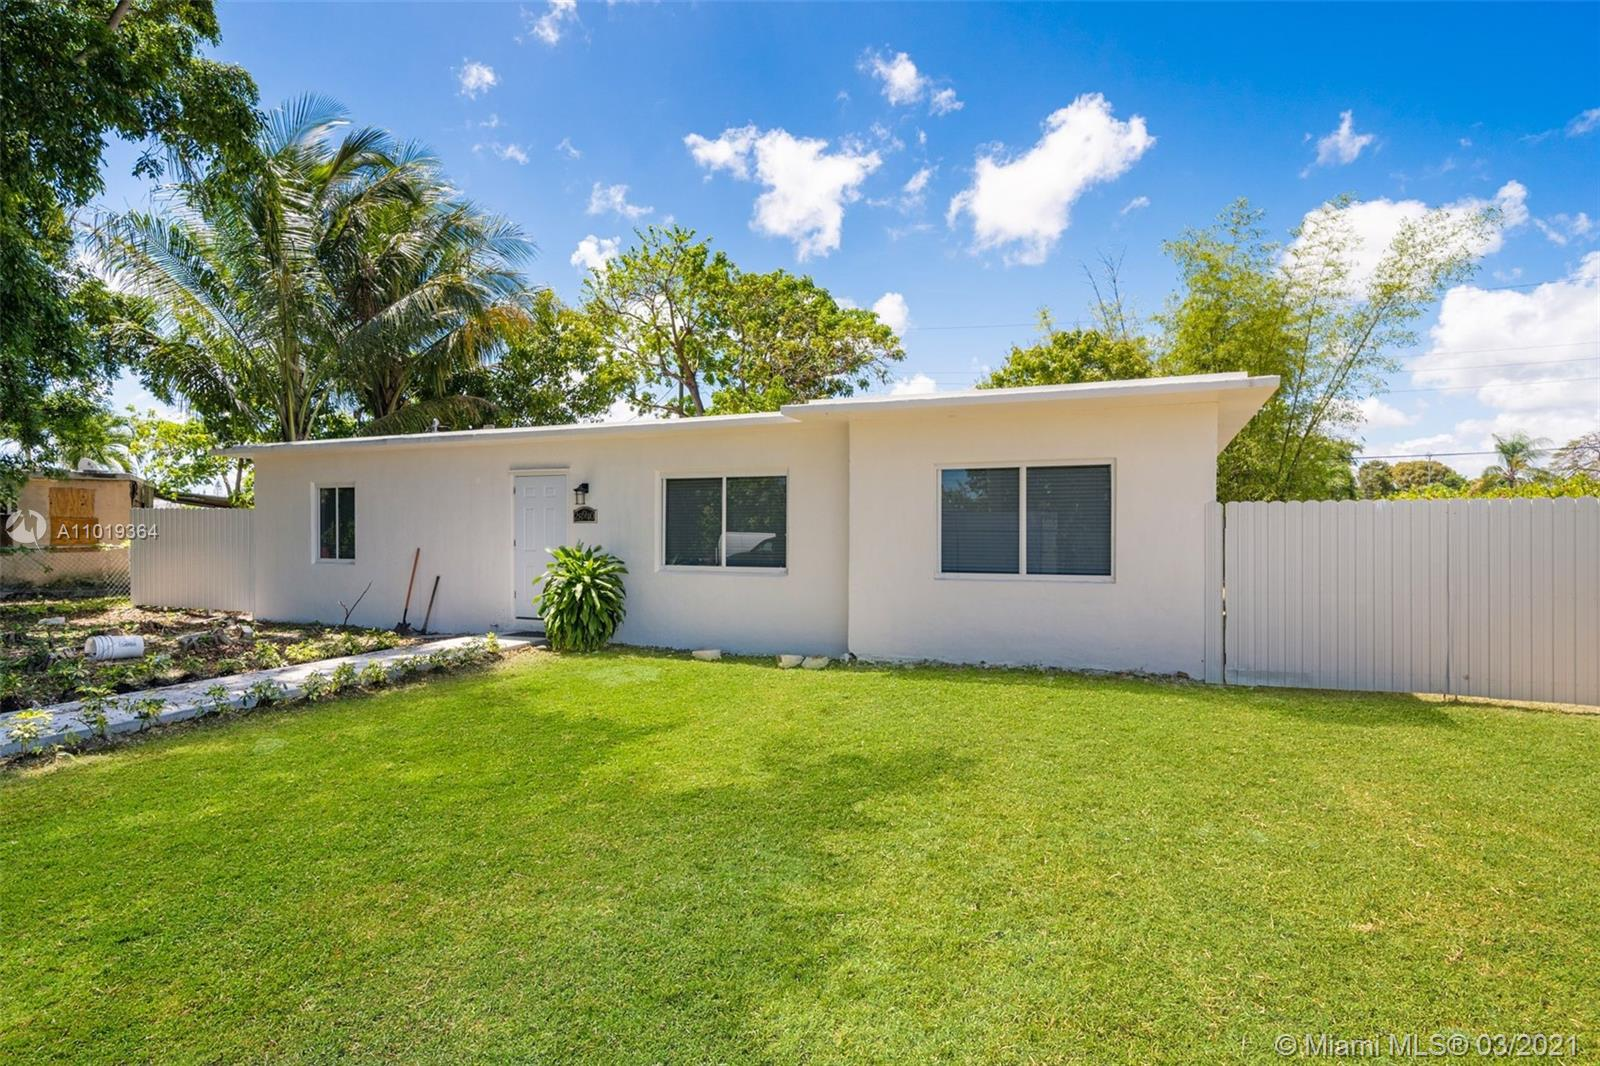 28940 Maine Rd Property Photo - Homestead, FL real estate listing